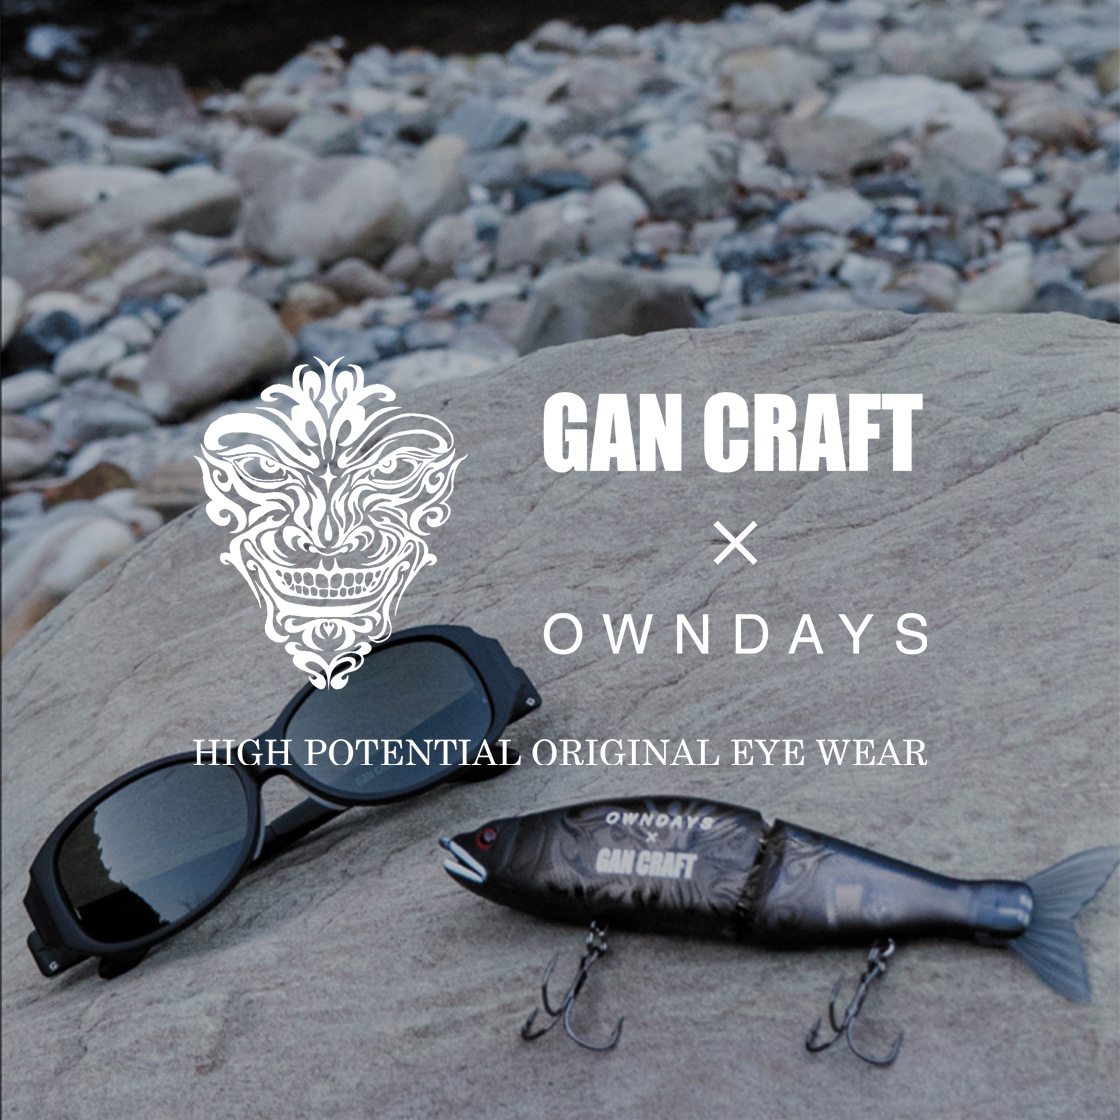 GAN CRAFT x OWNDAYS